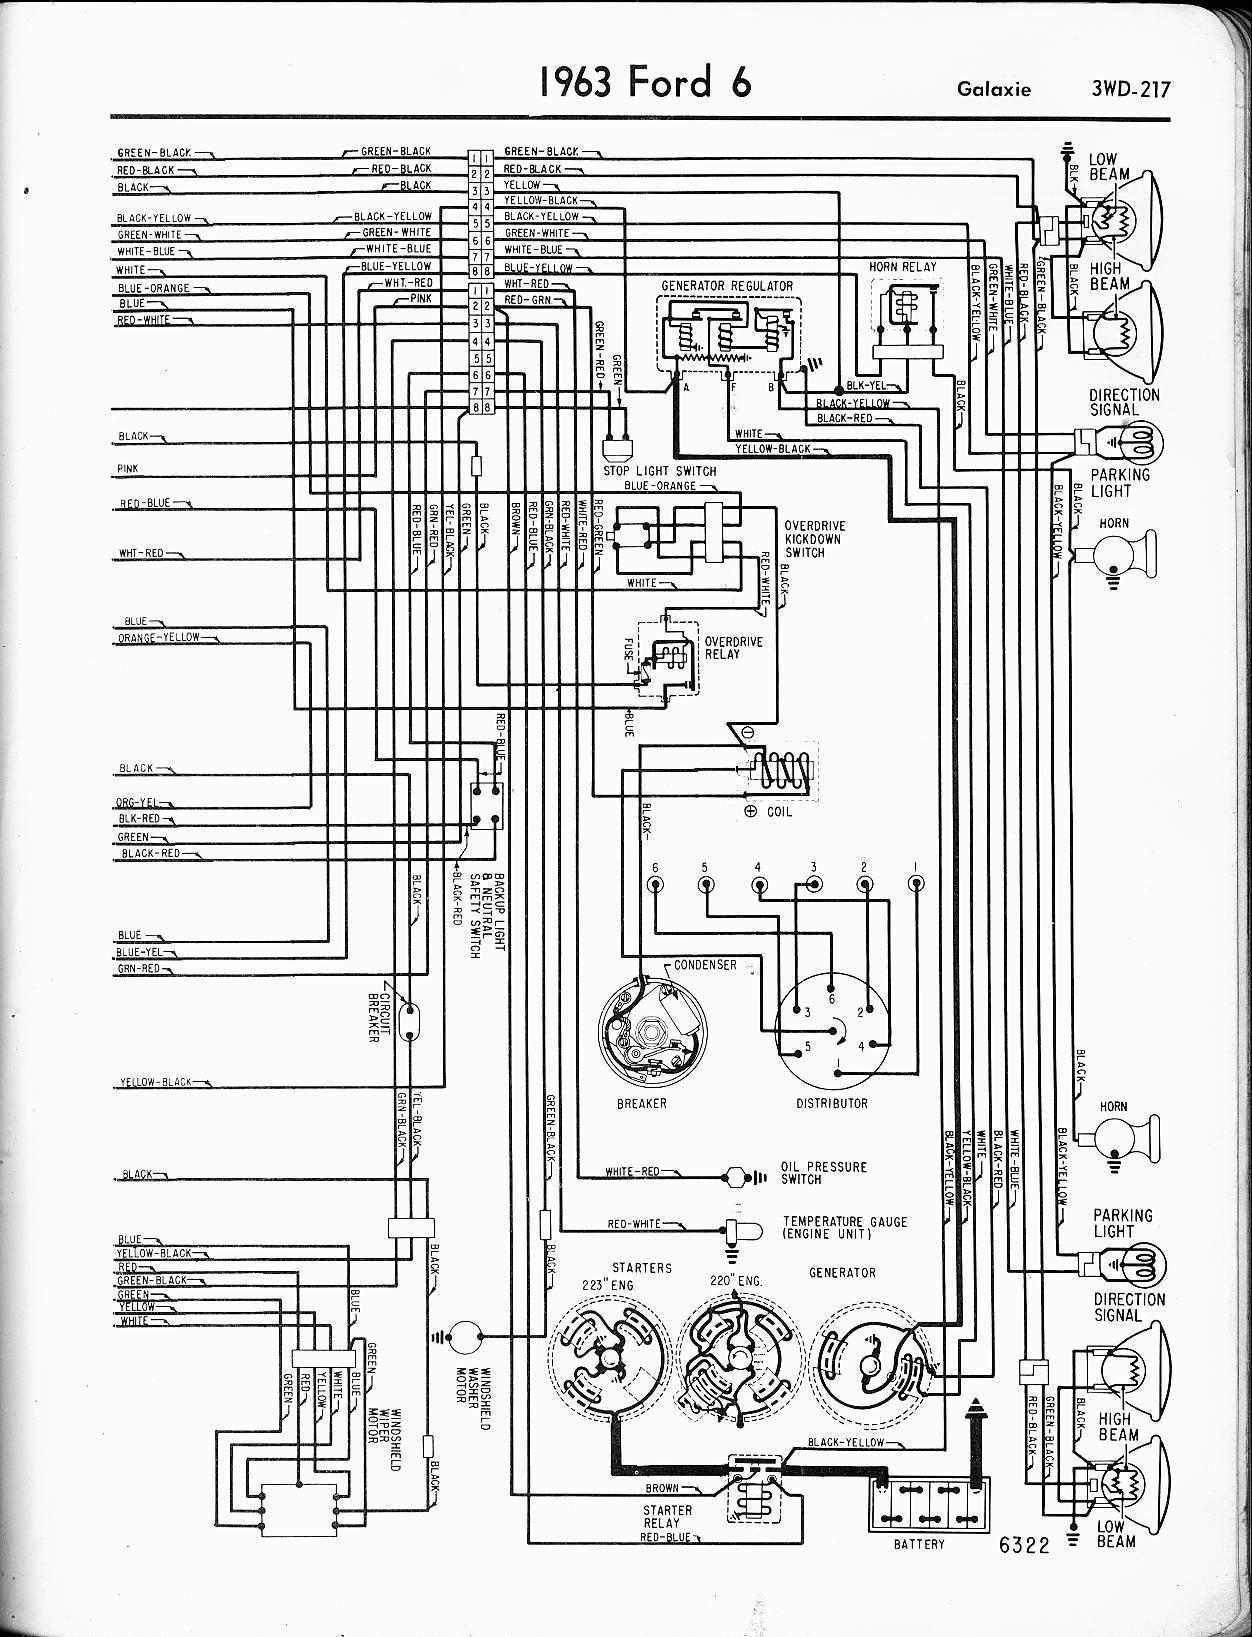 "1963 Ford Galaxie Wiring Diagram | Wiring Diagram John Deere Wiring Diagram on john deere voltage regulator wiring, john deere tractor wiring, john deere fuse box diagram, john deere 42"" deck diagrams, john deere repair diagrams, john deere 3020 diagram, john deere starters diagrams, john deere 310e backhoe problems, john deere power beyond diagram, john deere fuel gauge wiring, john deere gt235 diagram, john deere cylinder head, john deere 345 diagram, john deere electrical diagrams, john deere riding mower diagram, john deere 212 diagram, john deere chassis, john deere fuel system diagram, john deere sabre mower belt diagram, john deere rear end diagrams,"